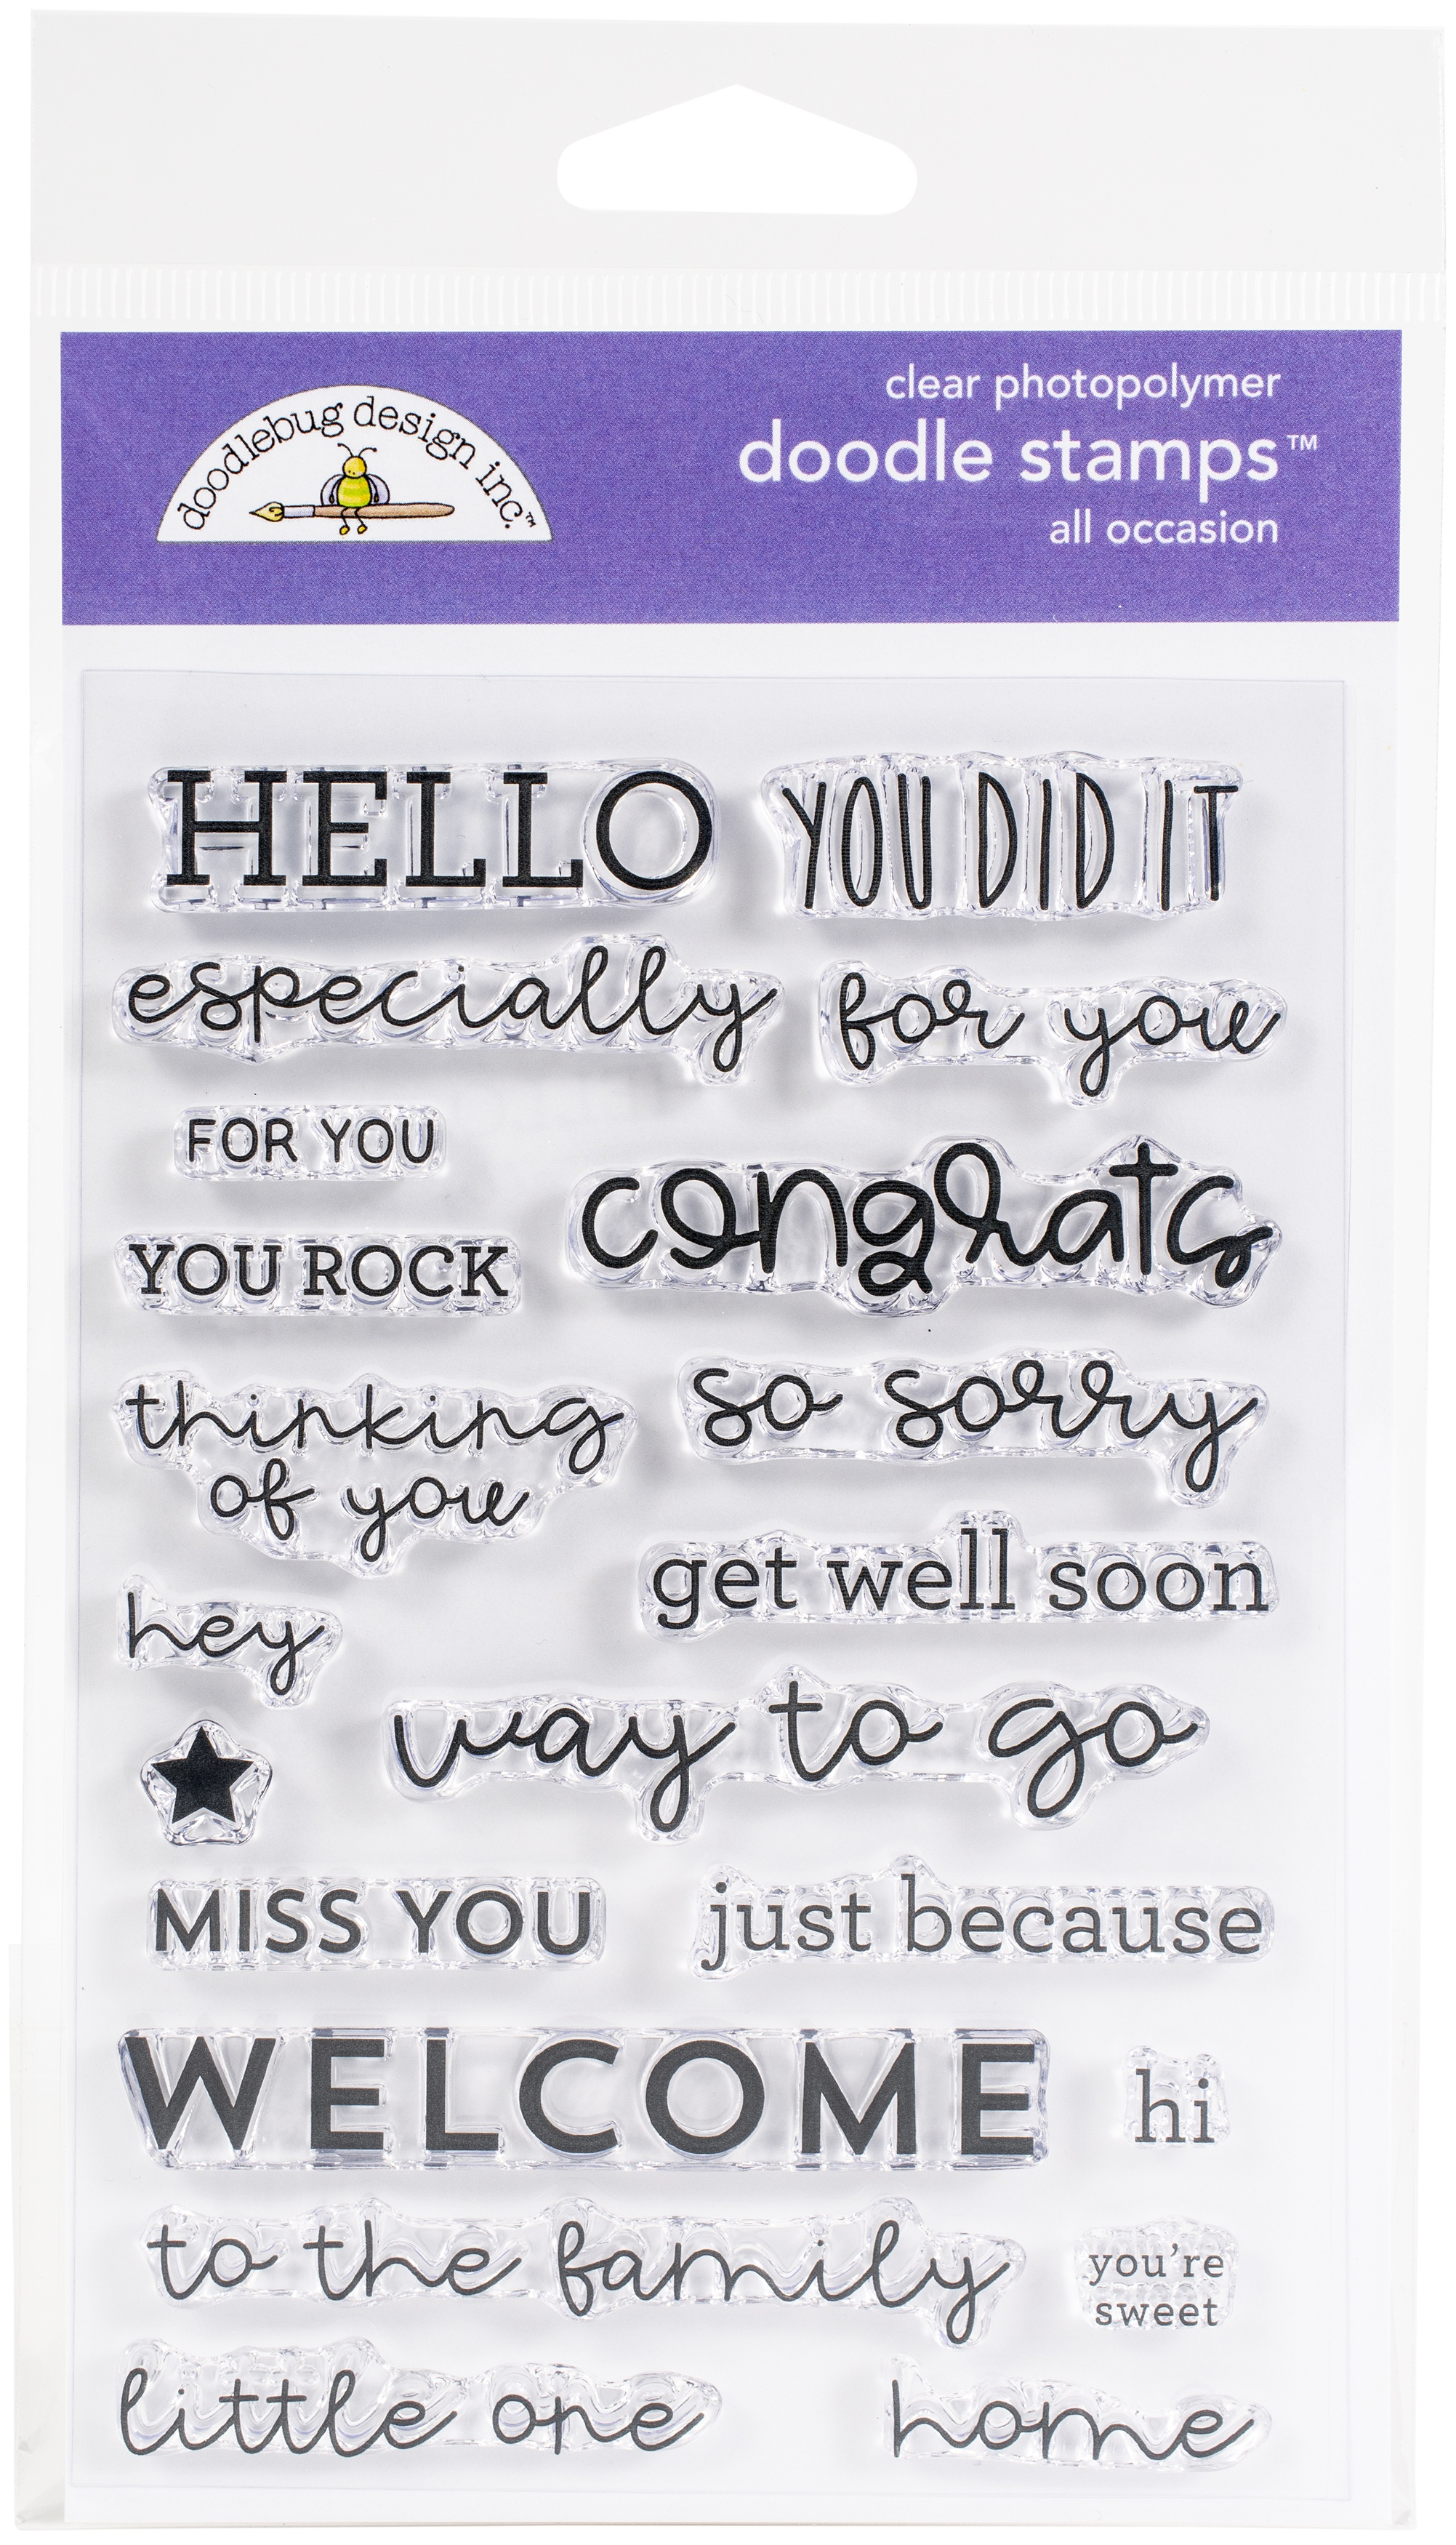 Doodlebug Clear Doodle Stamps-All Occasions